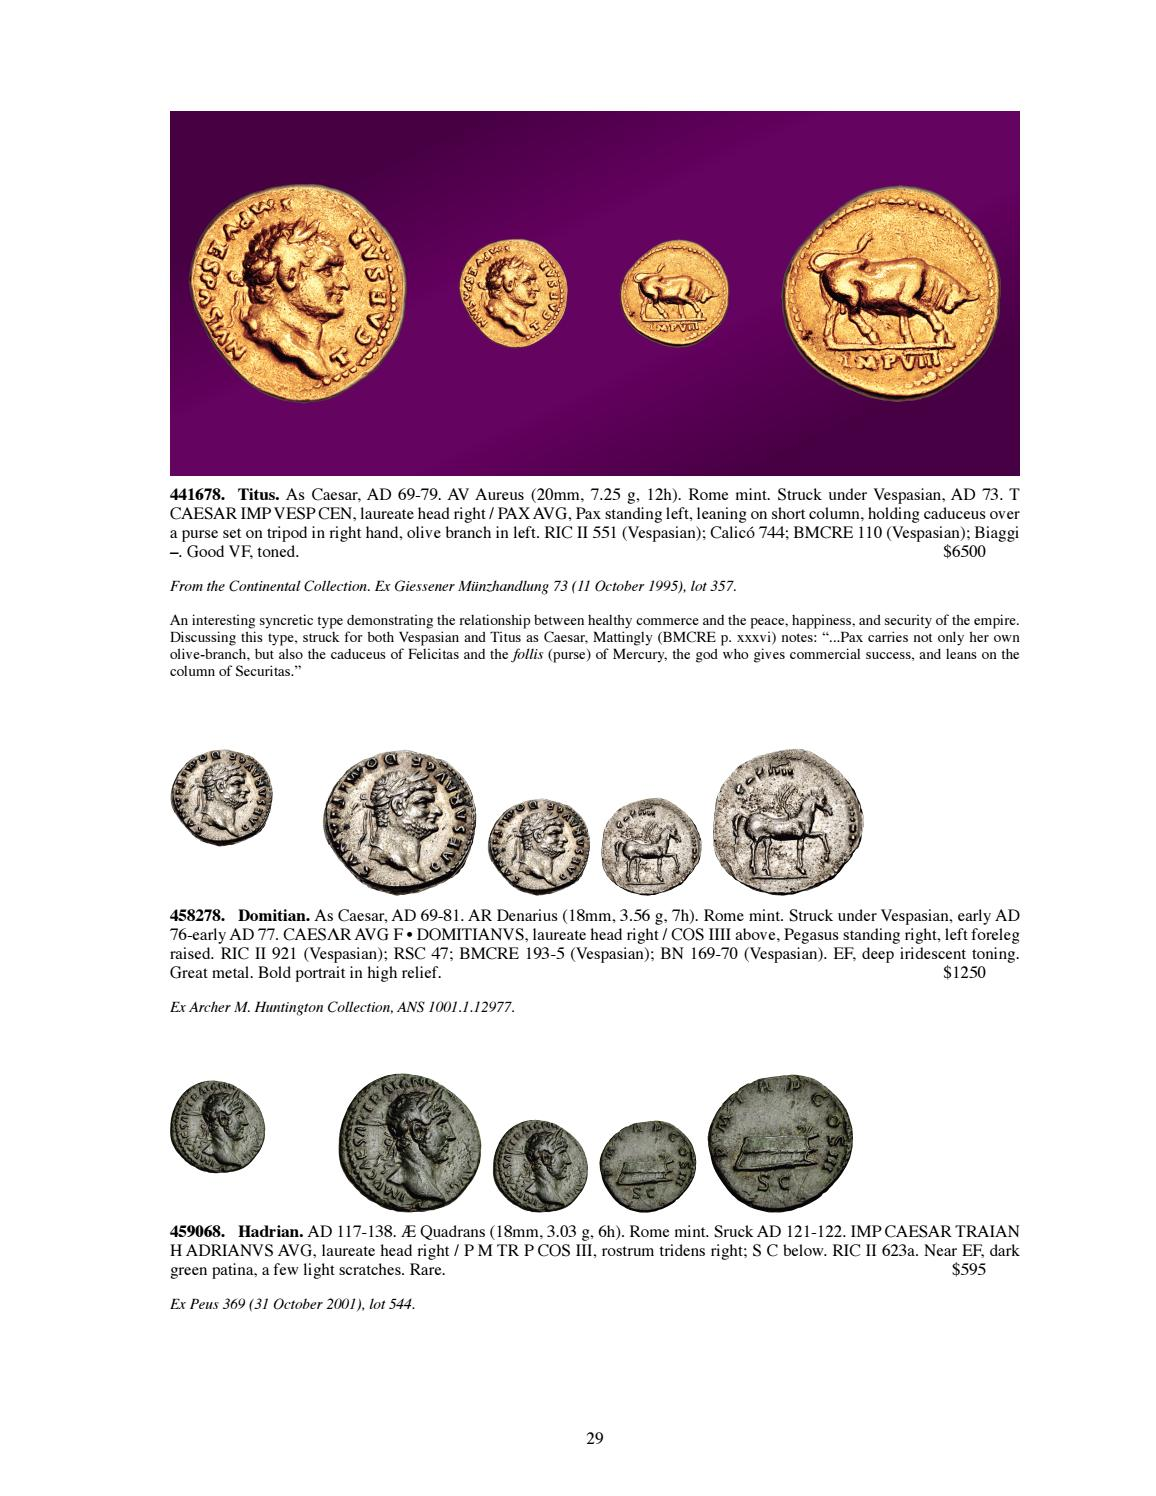 Cnr april 2017 by Classical Numismatic Group, LLC - issuu